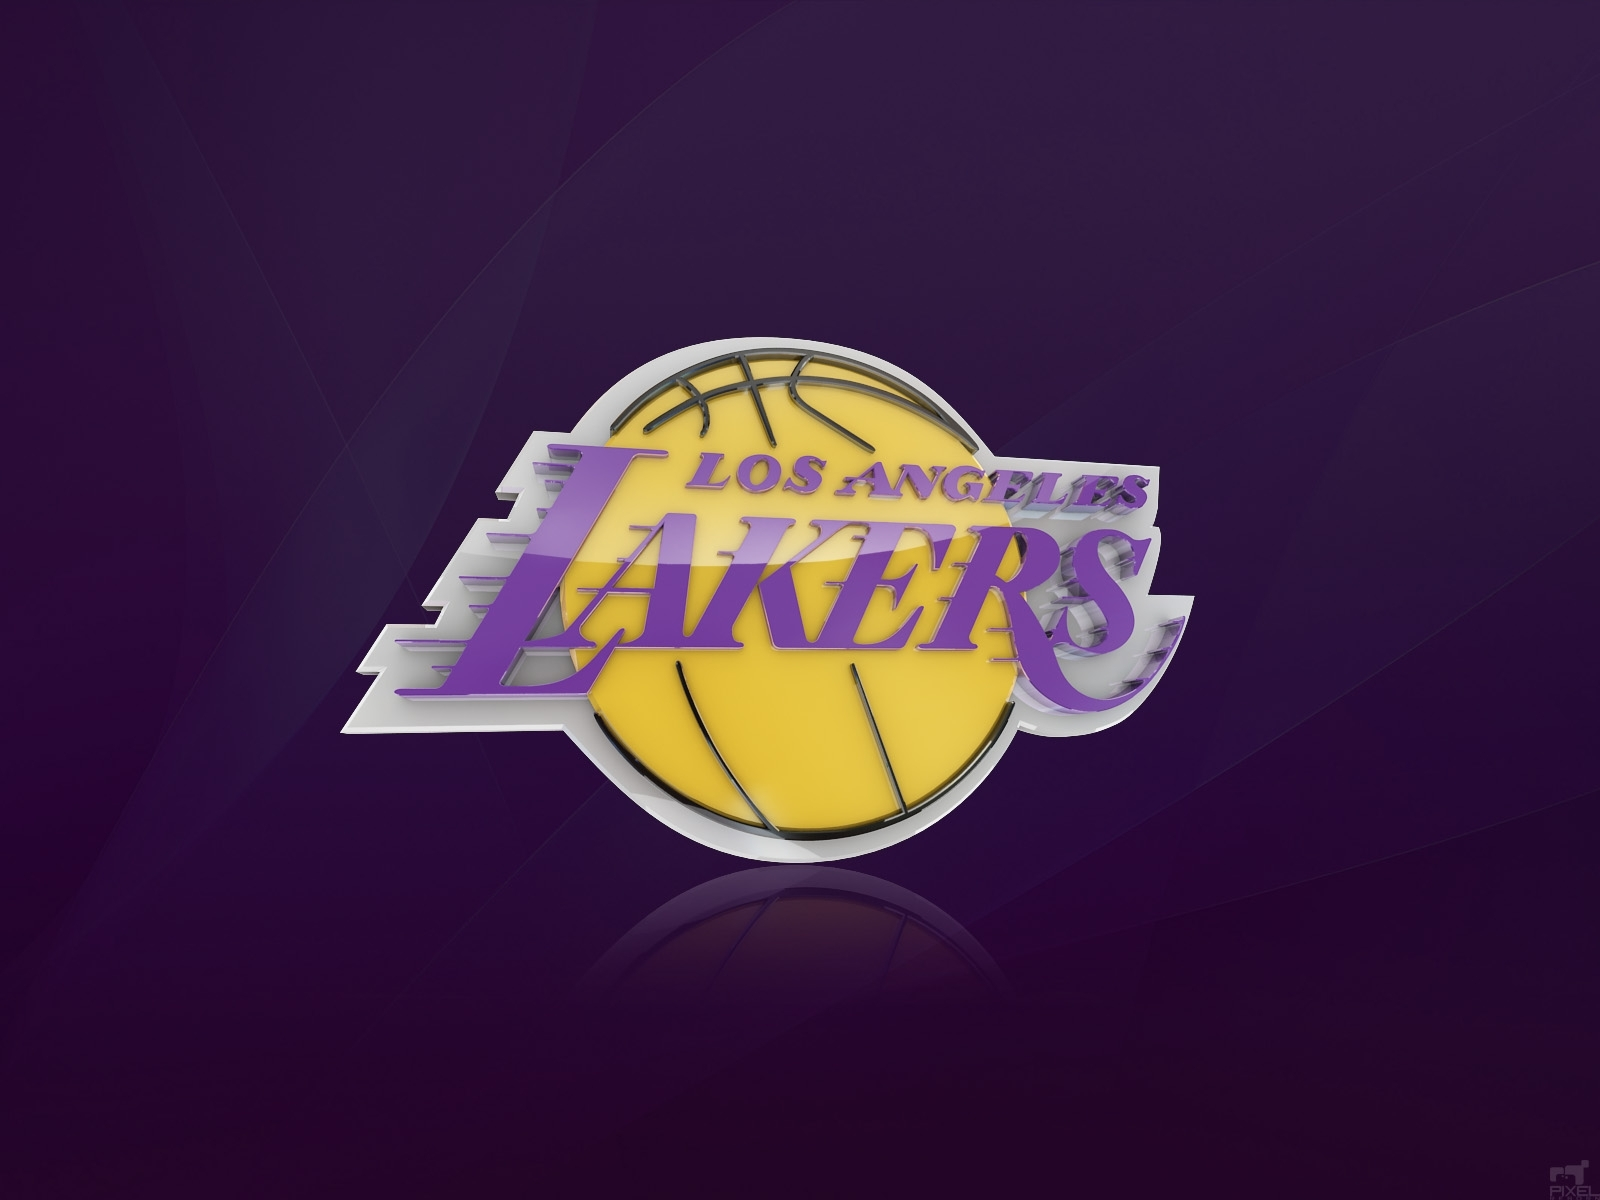 los angeles lakers tailgaters - bbqsuperstarsbbqsuperstars